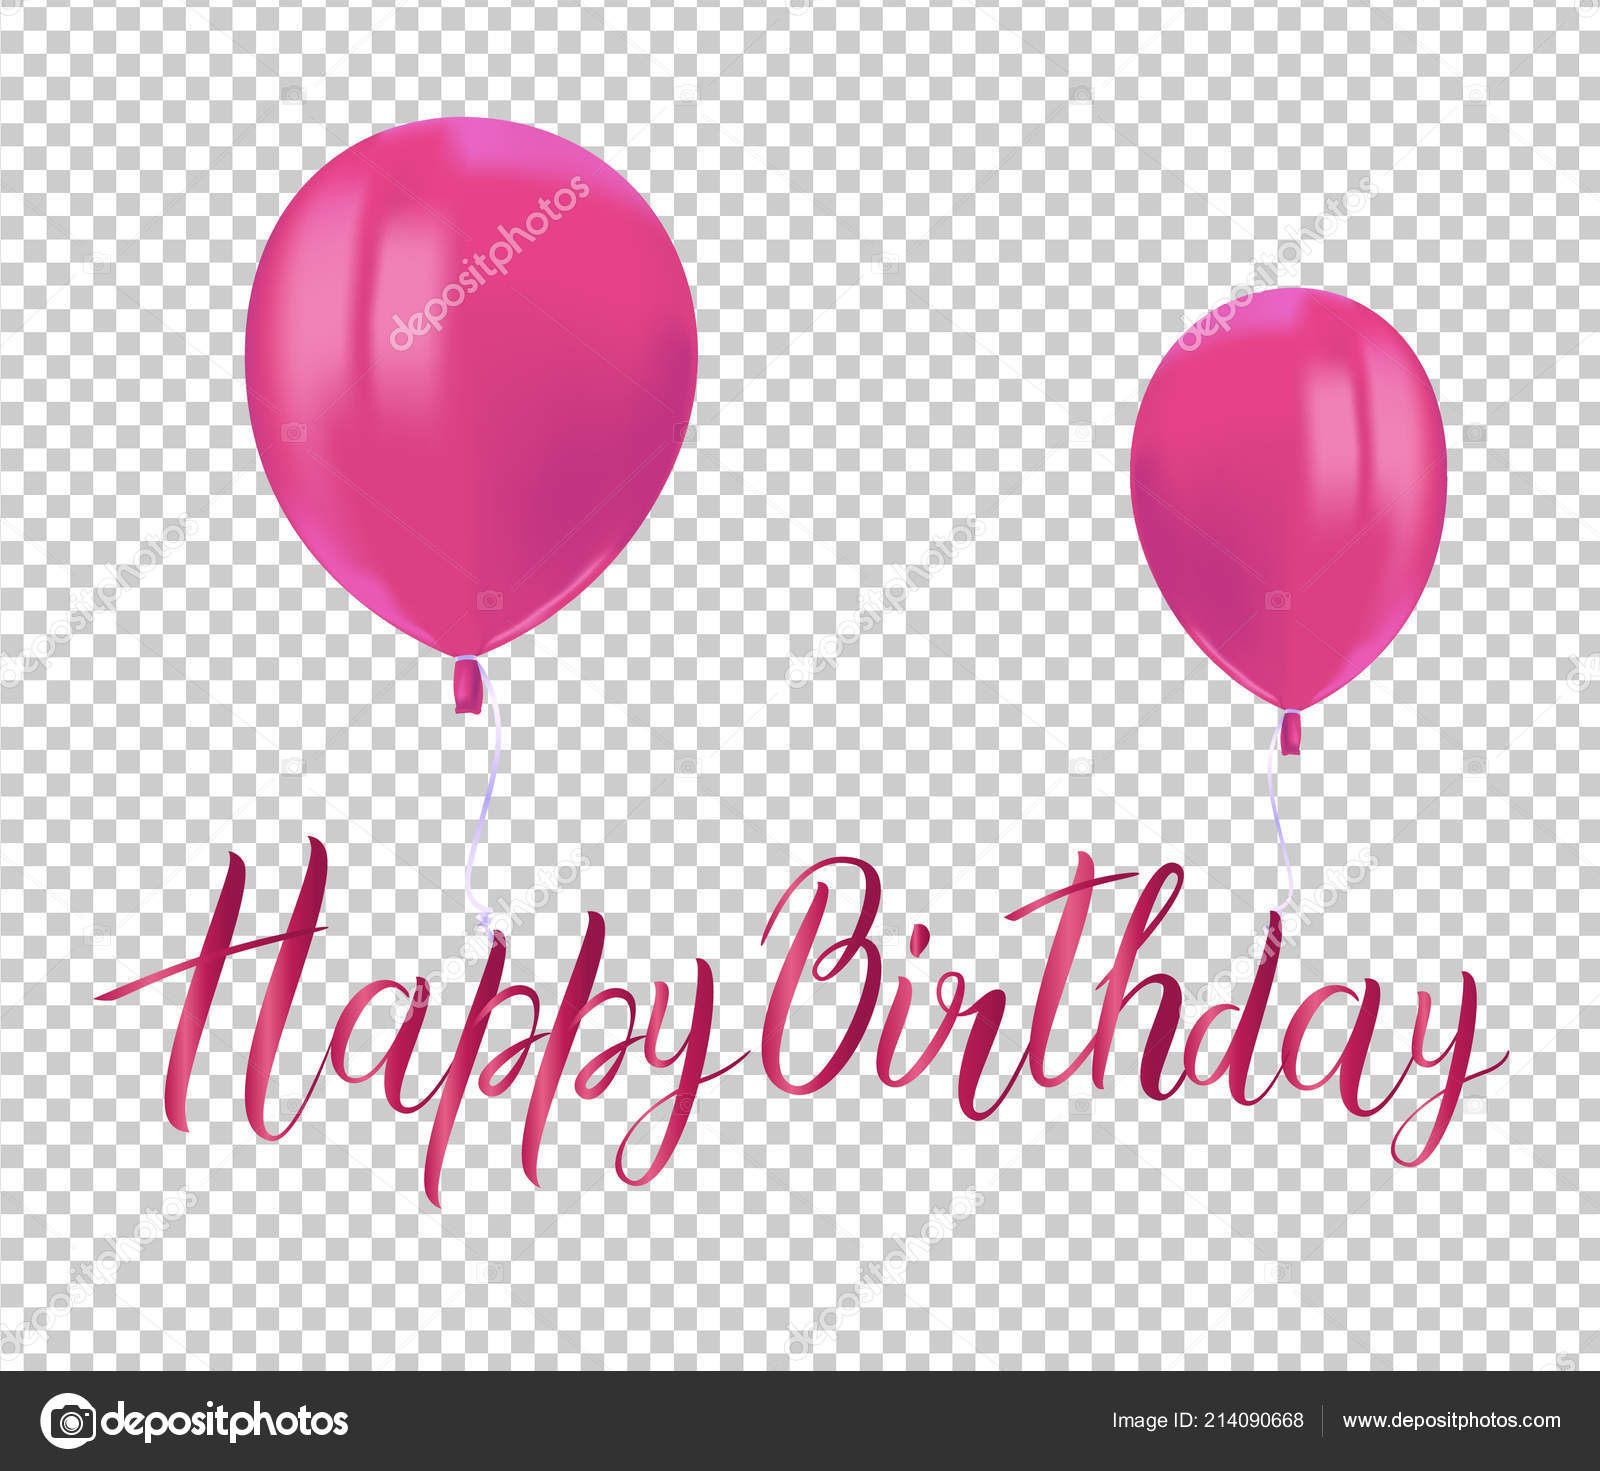 Realistic Pink Balloons Reflects Inscription Happy Birthday Transparent Background Festive Stock Vector